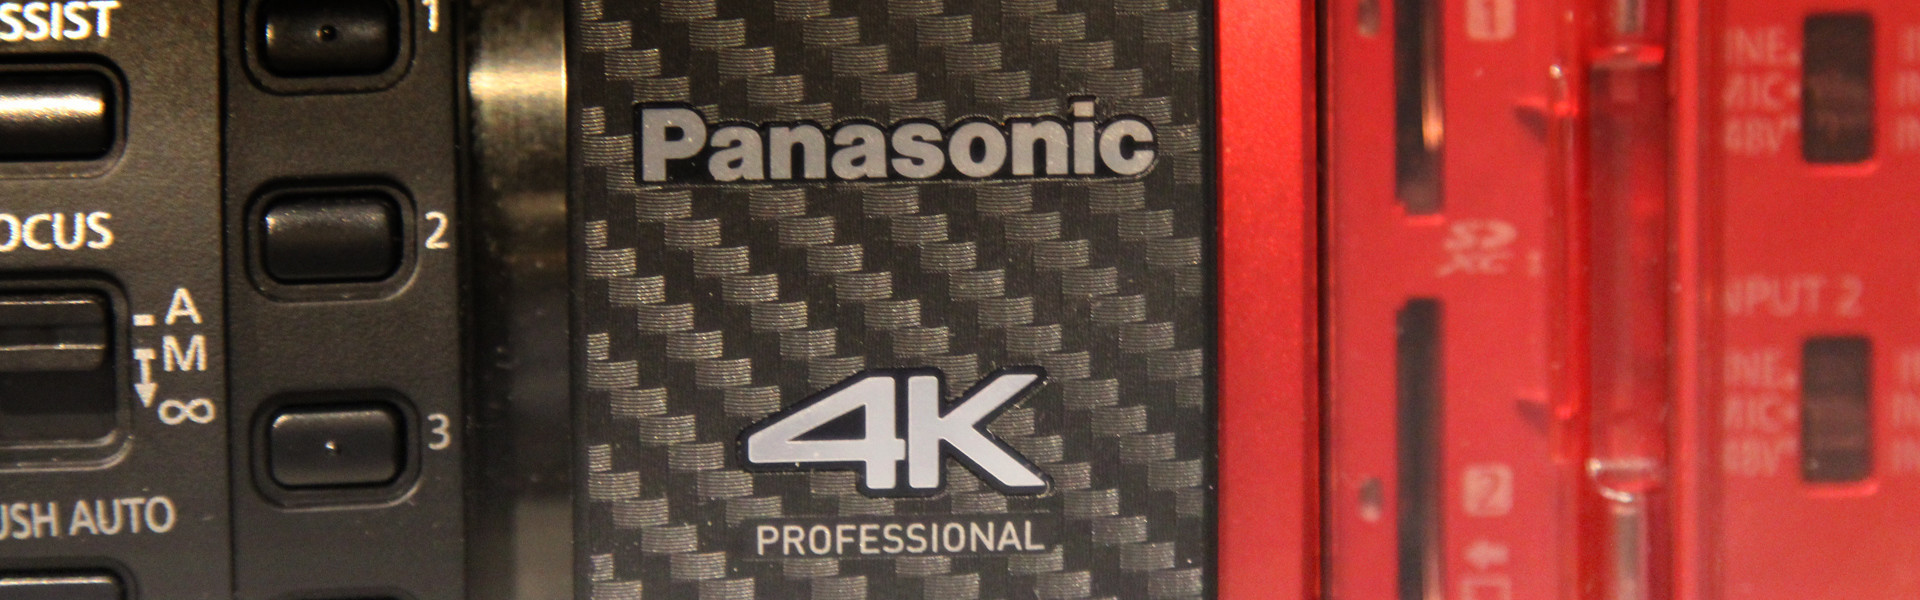 Header image for article Press Release: Panasonic is Creating Buzz in the Hollywood Production Industry